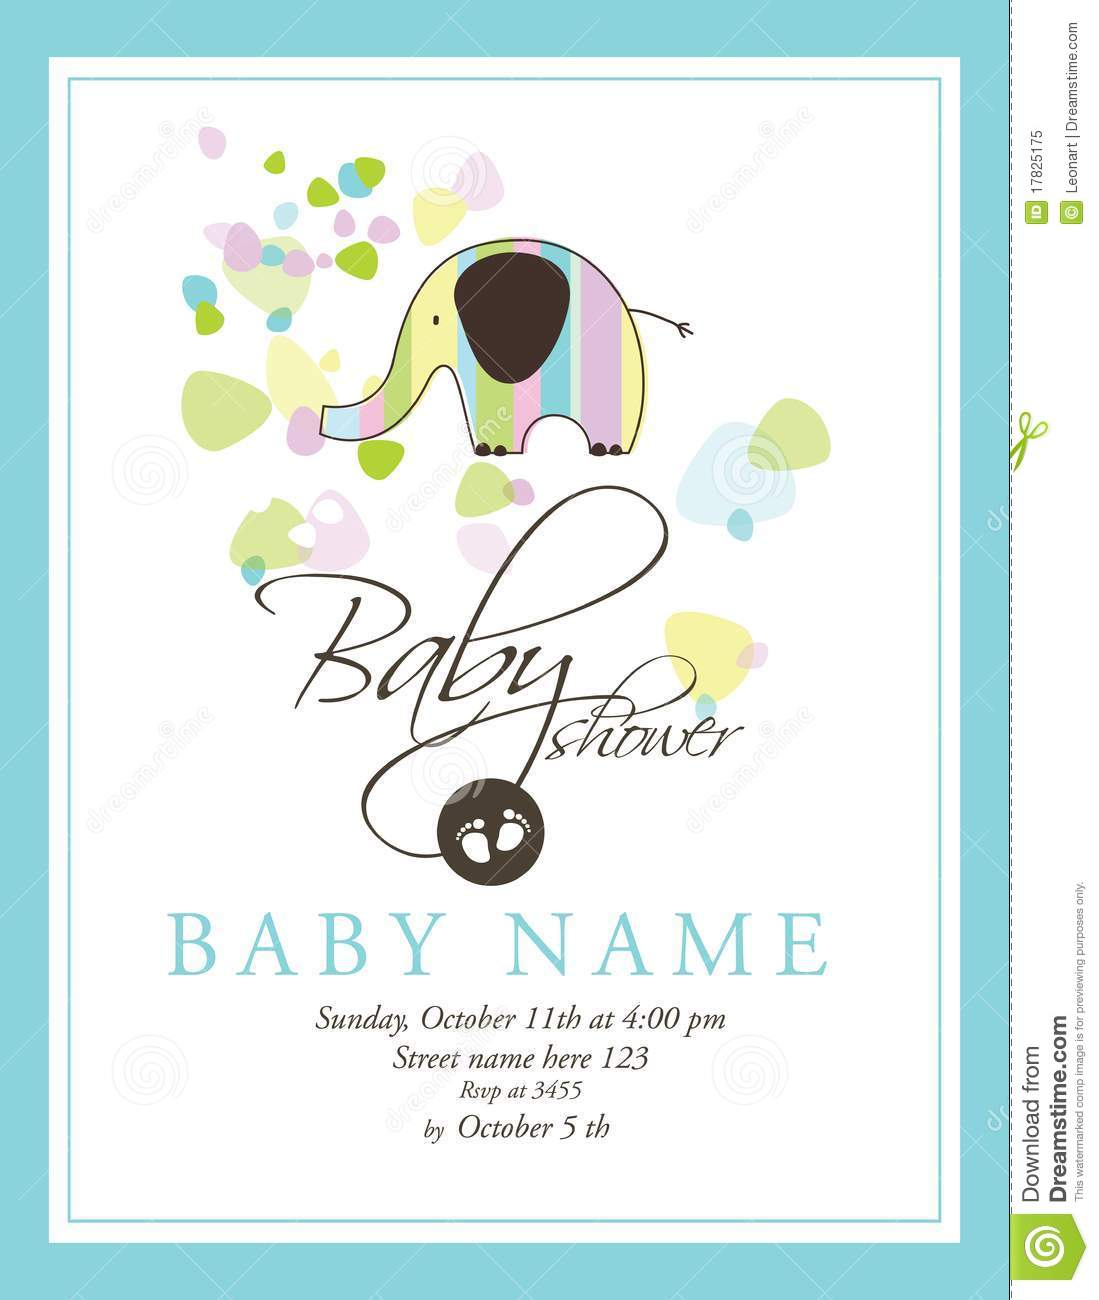 Full Size of Baby Shower:graceful Baby Shower Cards Image Designs Baby Shower Cards Or Baby Shower Gifts With Modern Baby Shower Themes Plus Cheap Baby Shower Together With Baby Shower Games As Well As Baby Shower Games For Men And Elegant Baby Shower